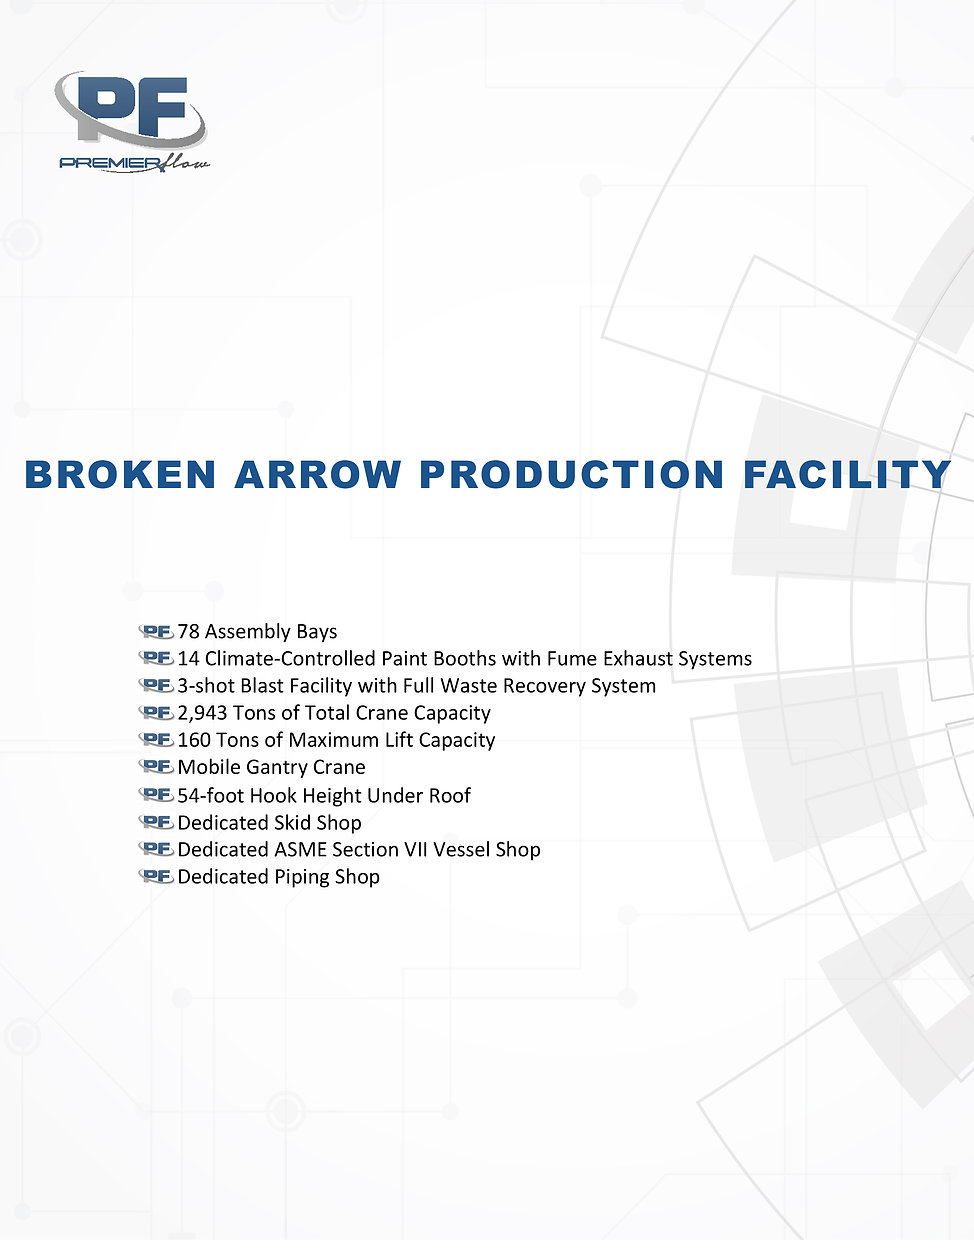 BROKEN ARROW PRODUCTION FACILITY.jpg